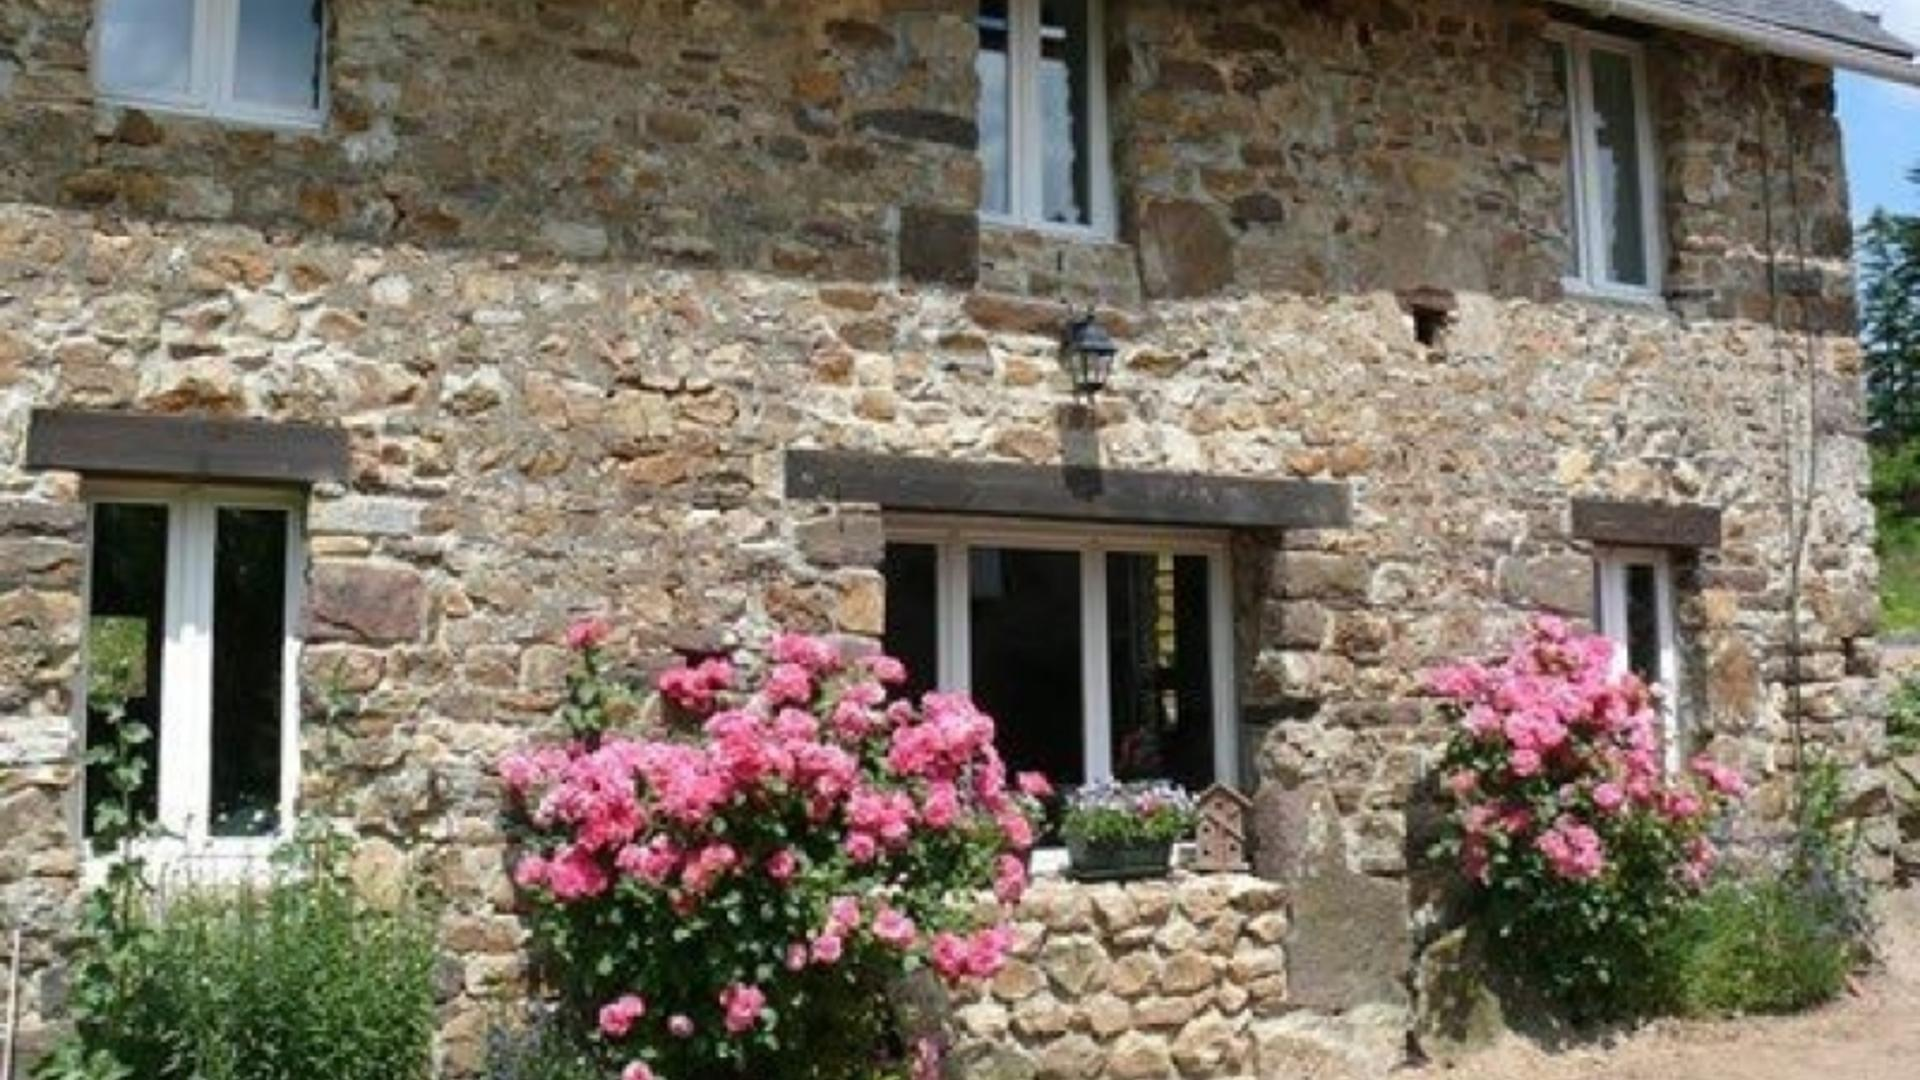 3 Bedroom Private cottage/shared grounds in Normandy, France